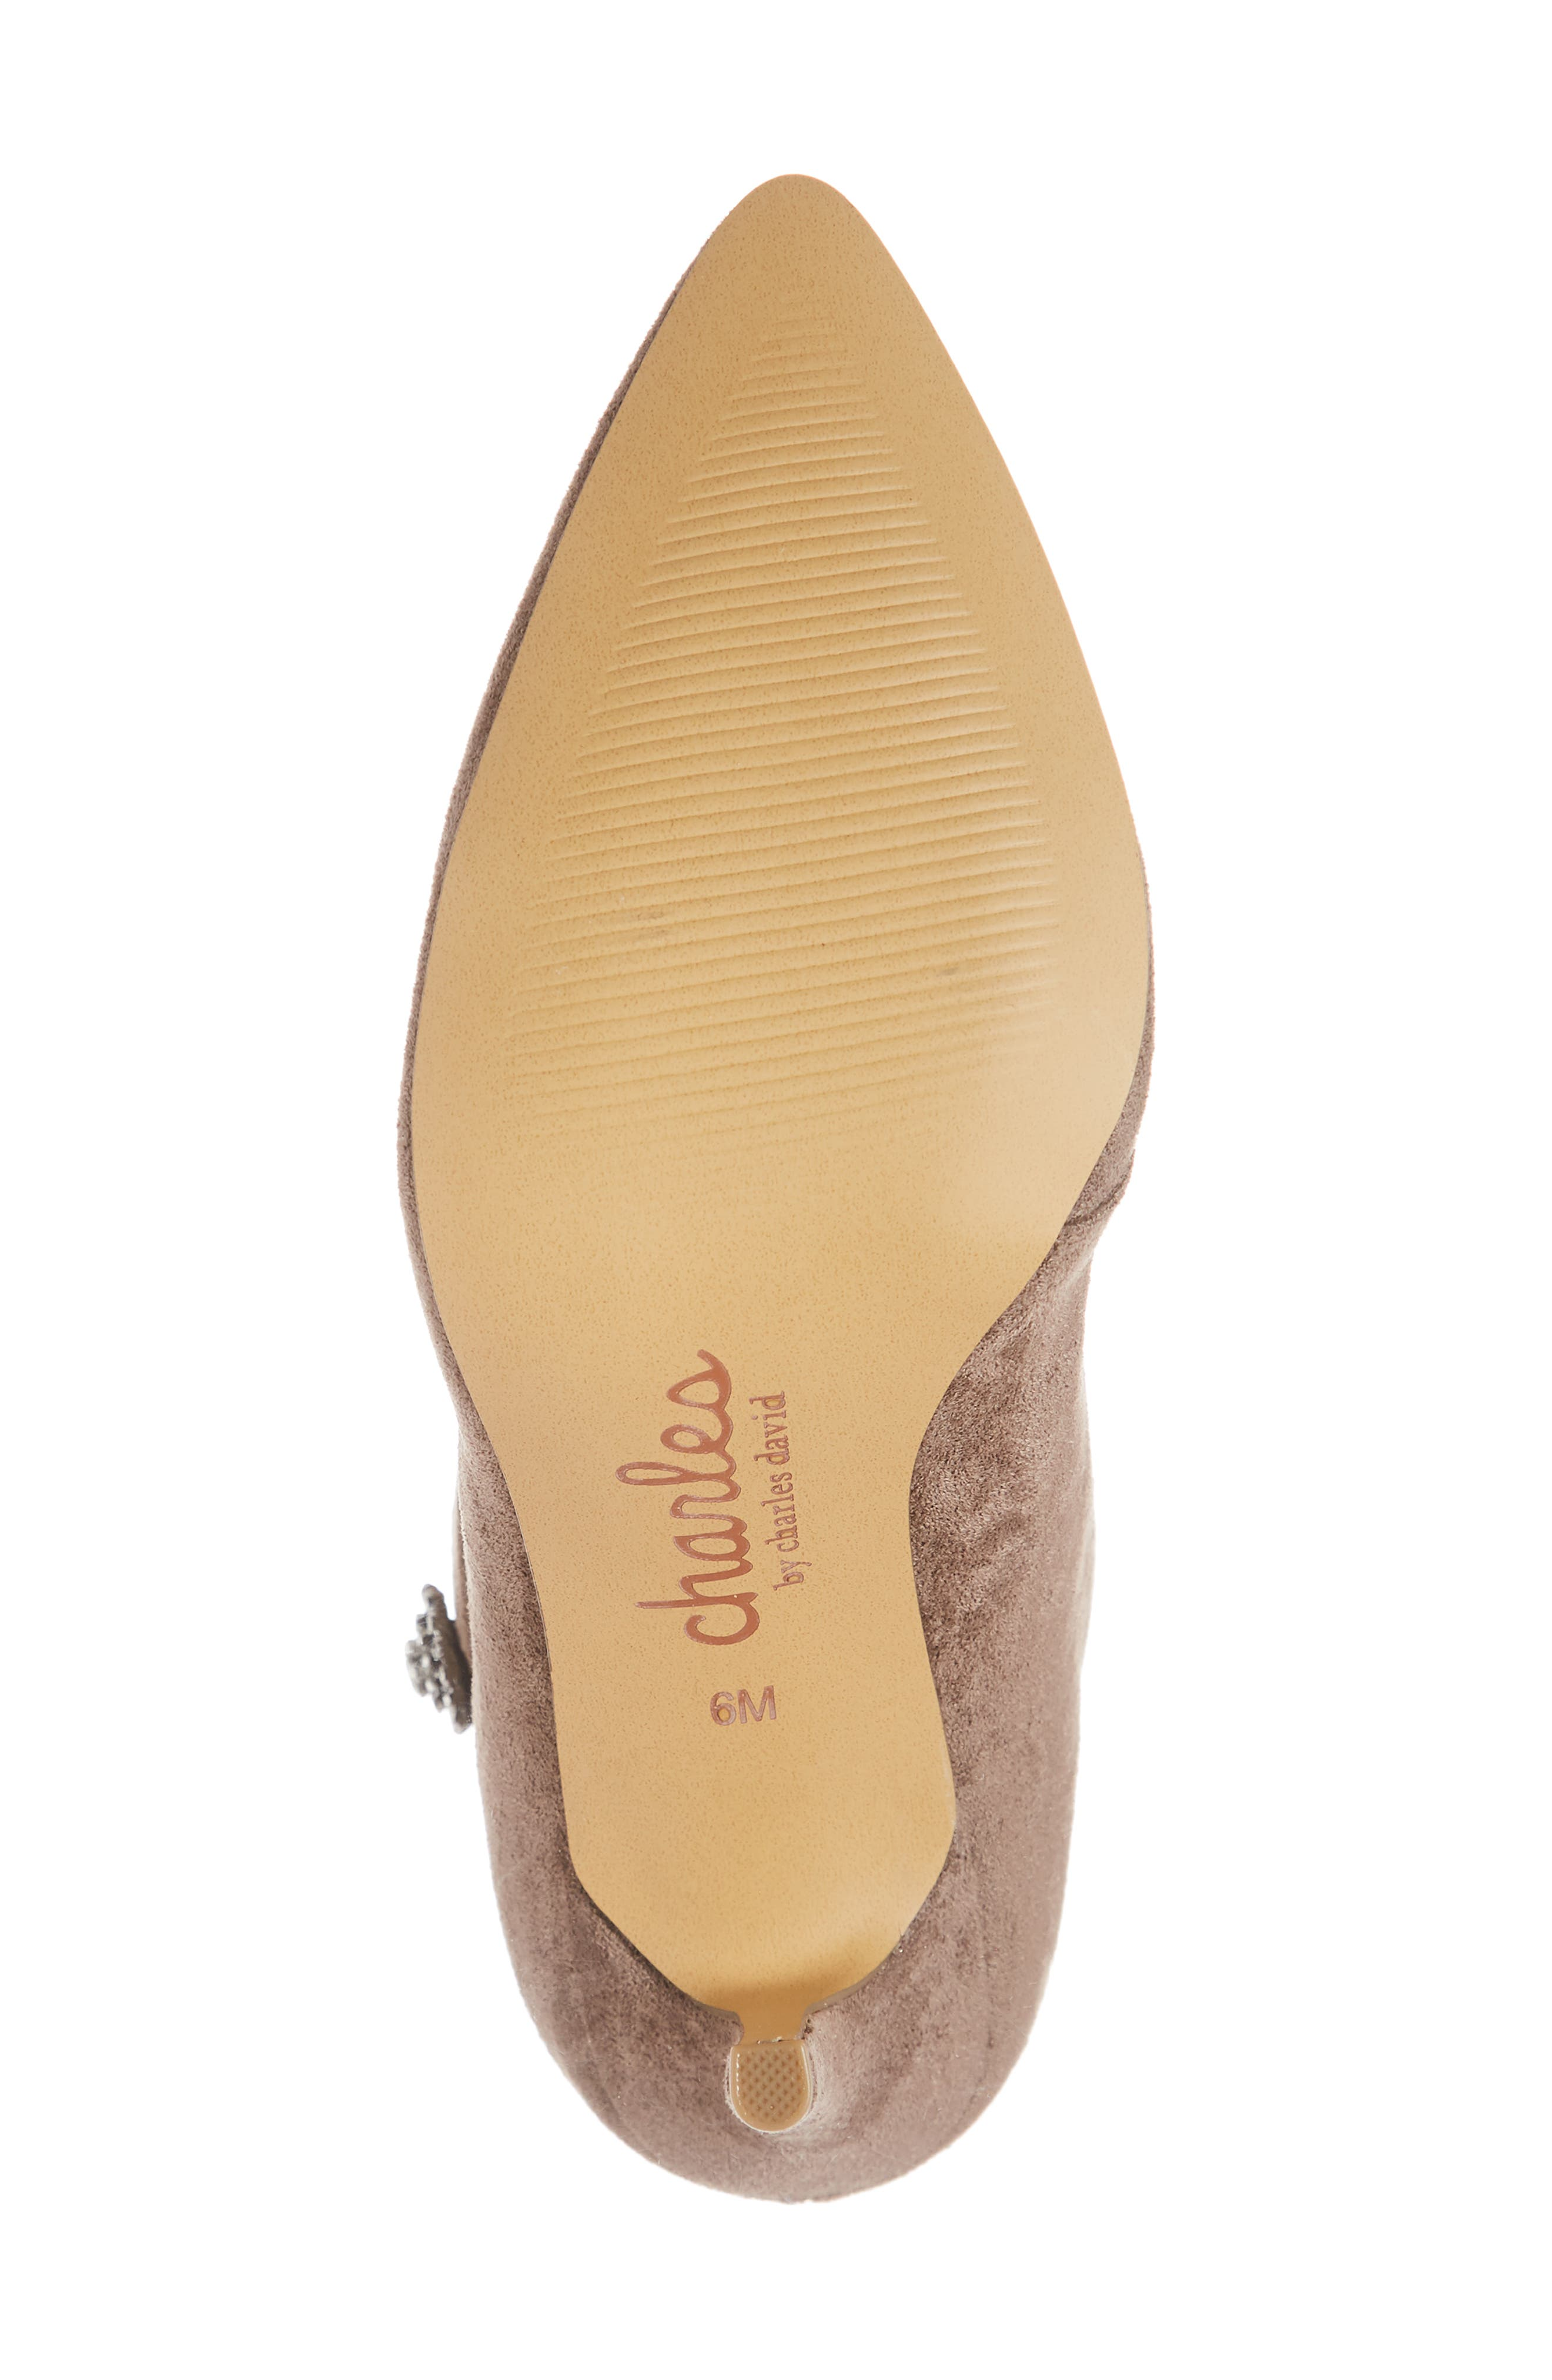 CHARLES BY CHARLES DAVID, Pistol Crystal Embellished Pointy Toe Bootie, Alternate thumbnail 6, color, TAUPE SUEDE